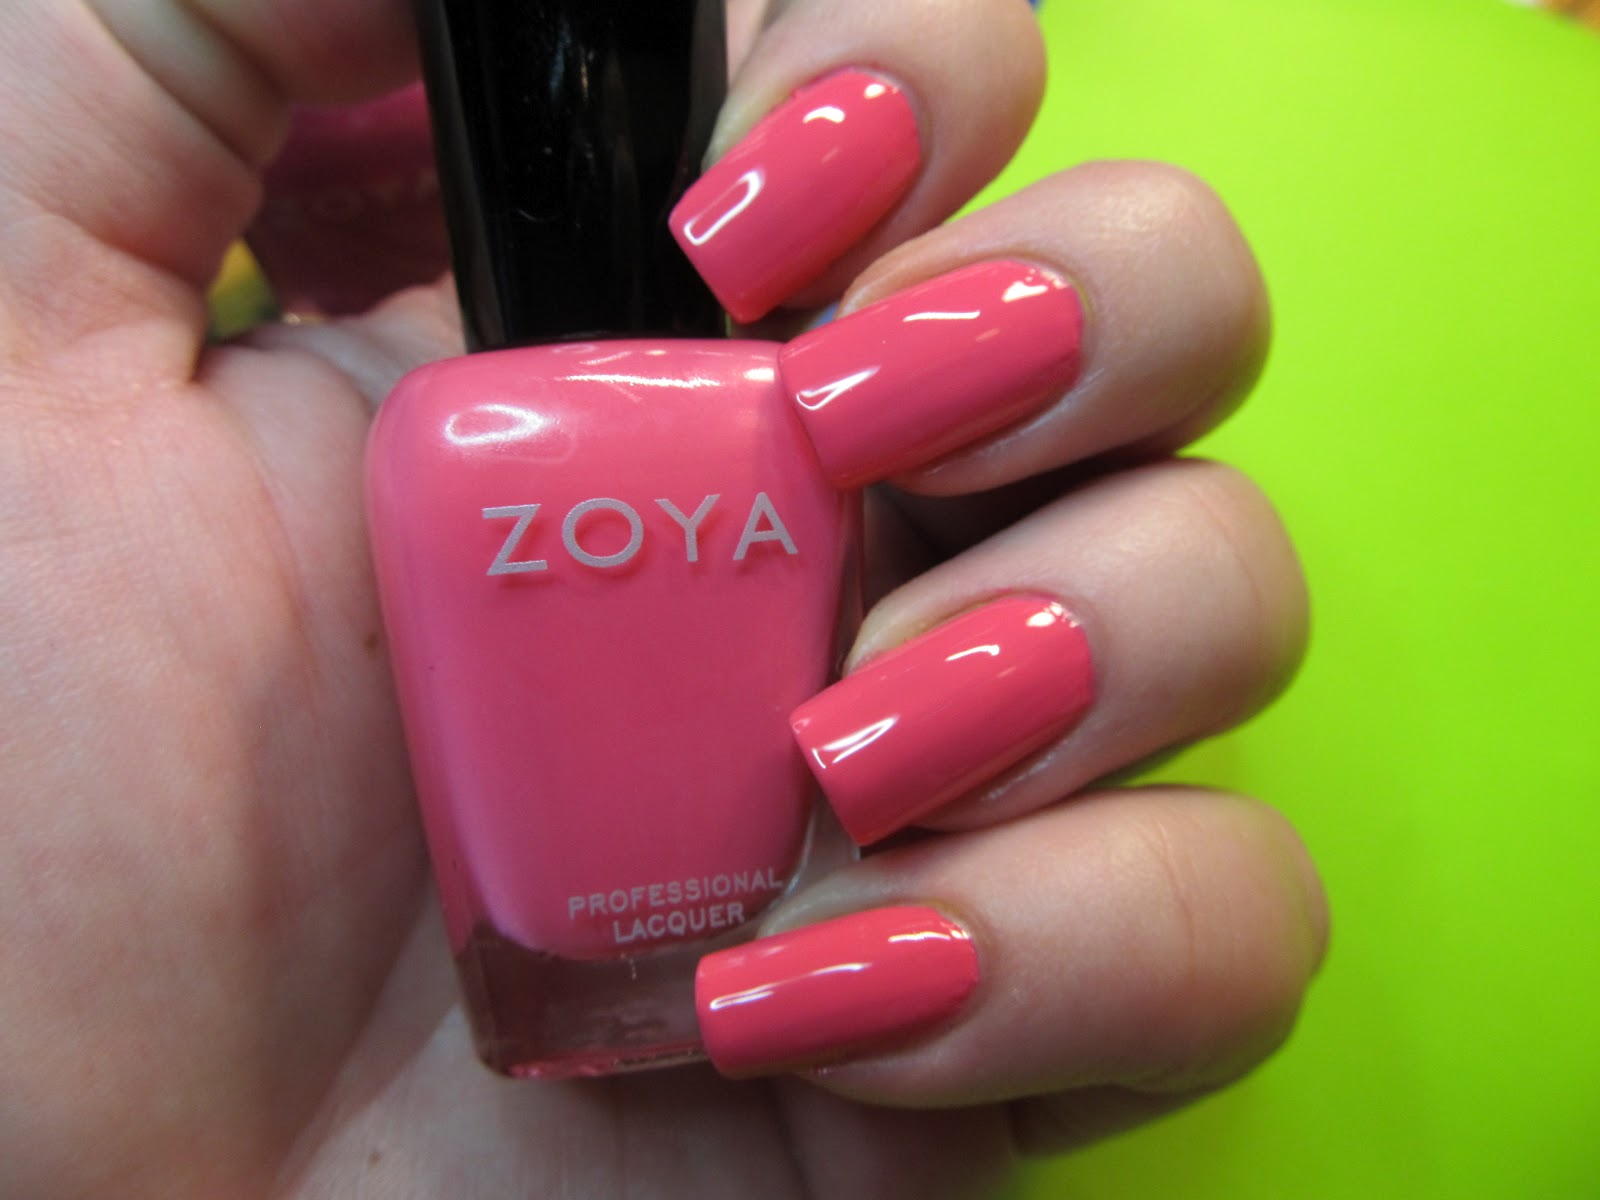 April 2012 - Set in Lacquer